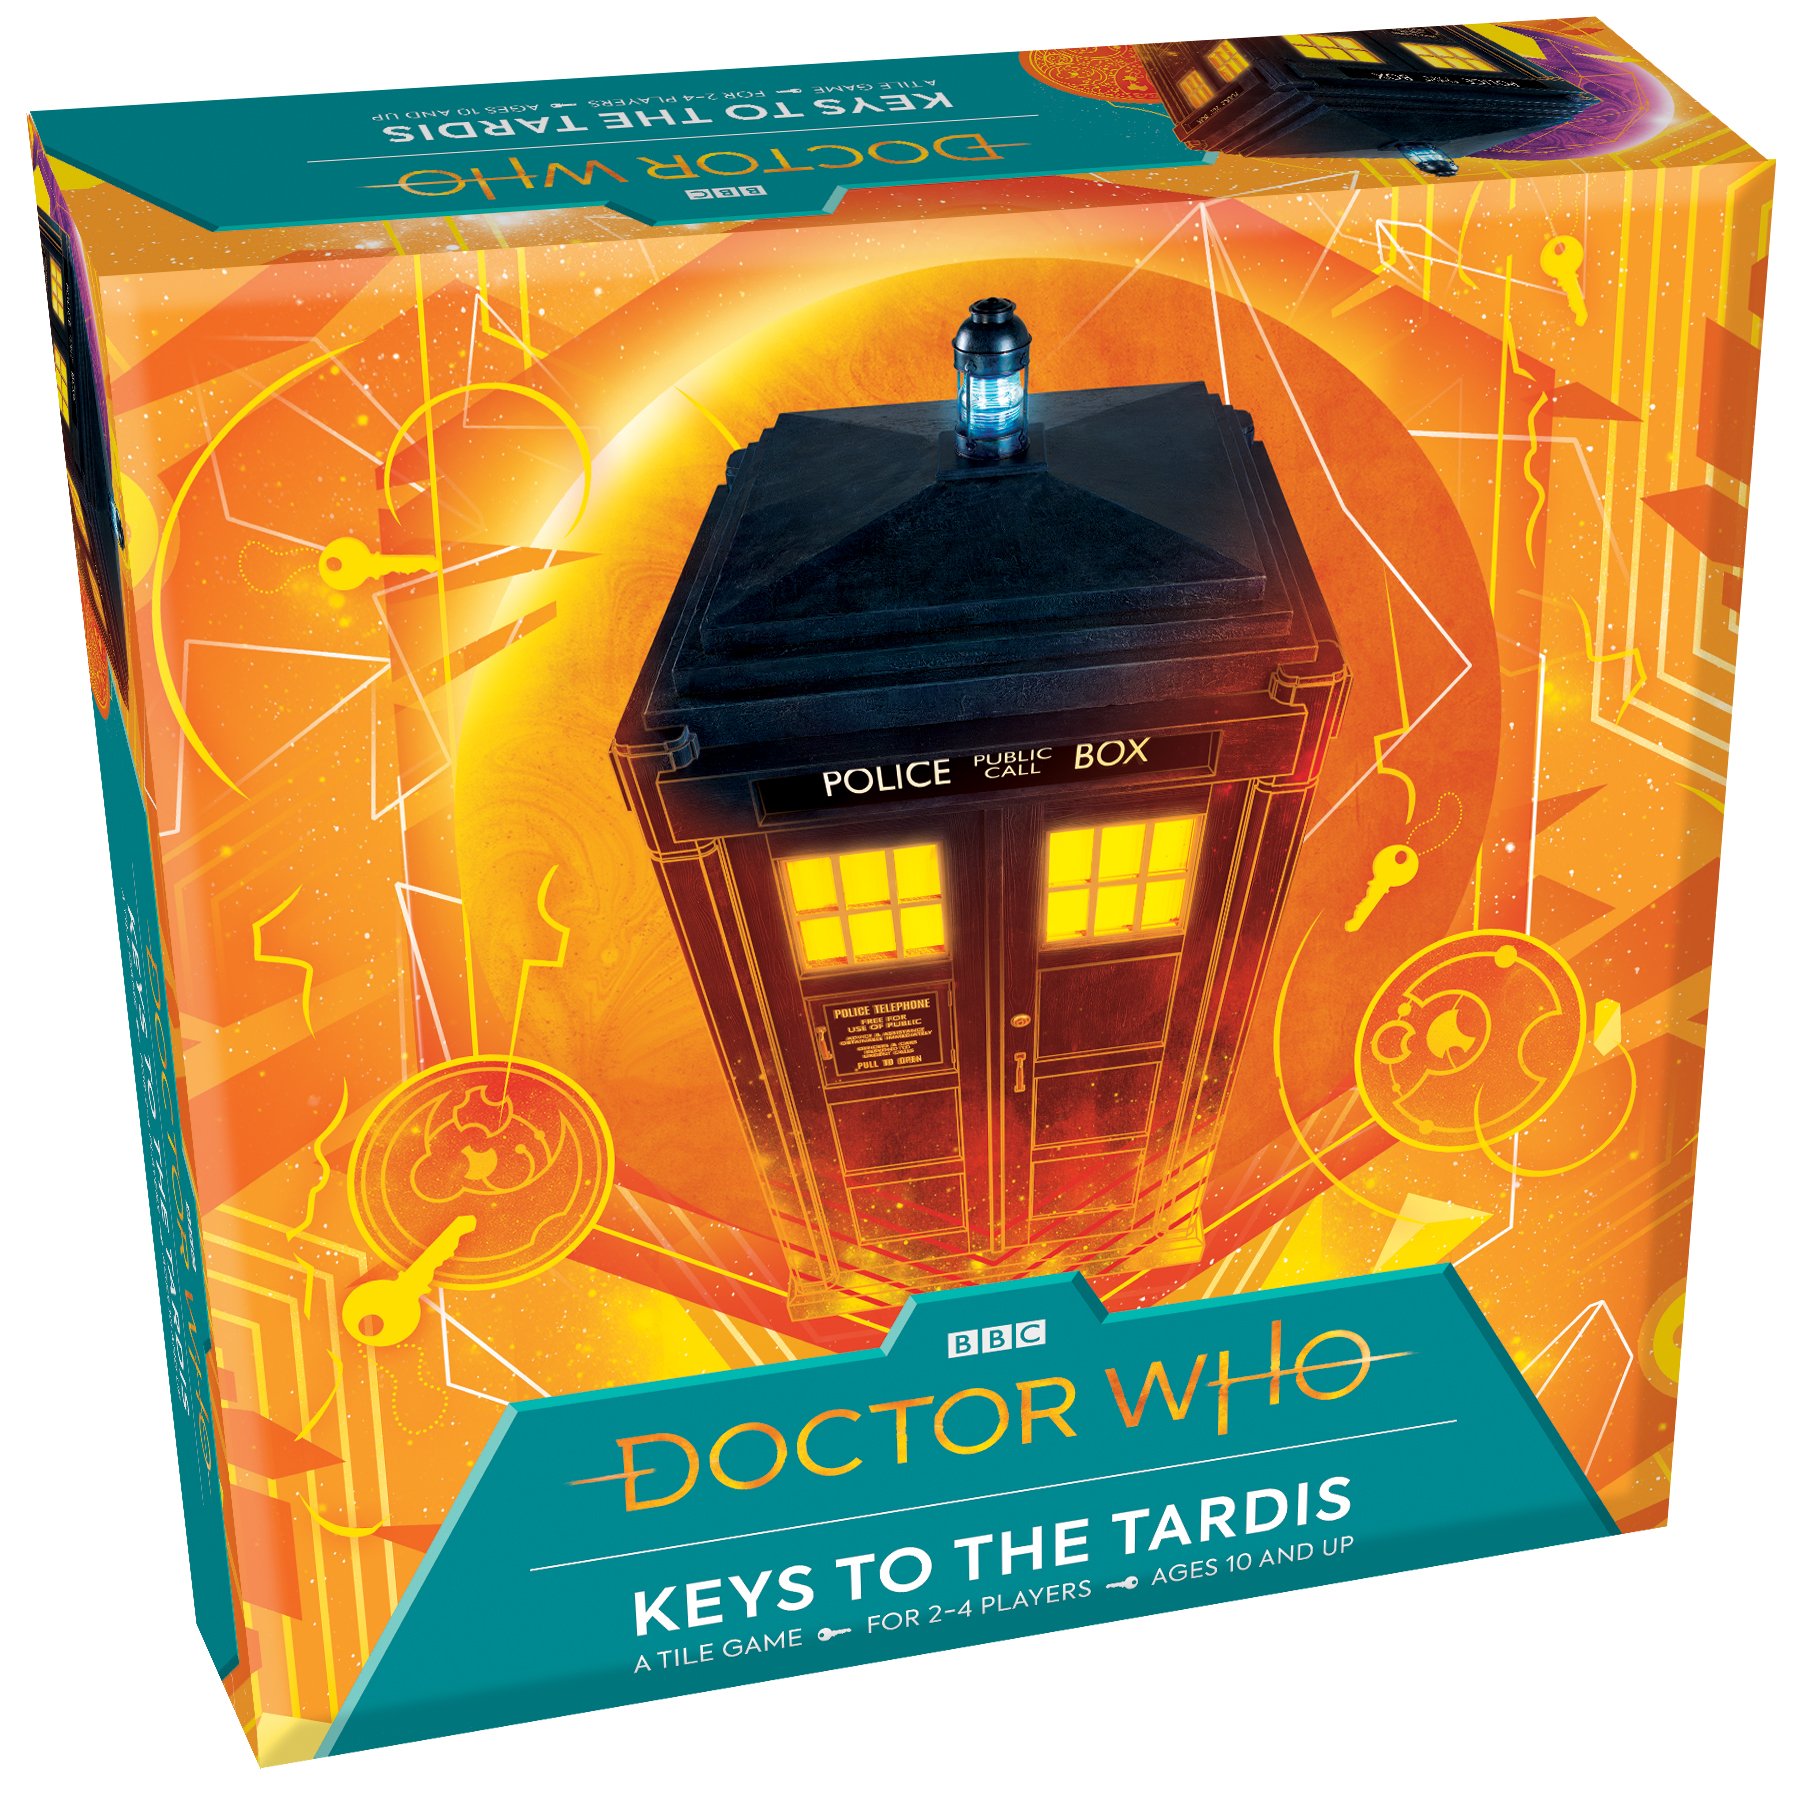 Keys to the TARDIS Doctor Who board game by Outset Media